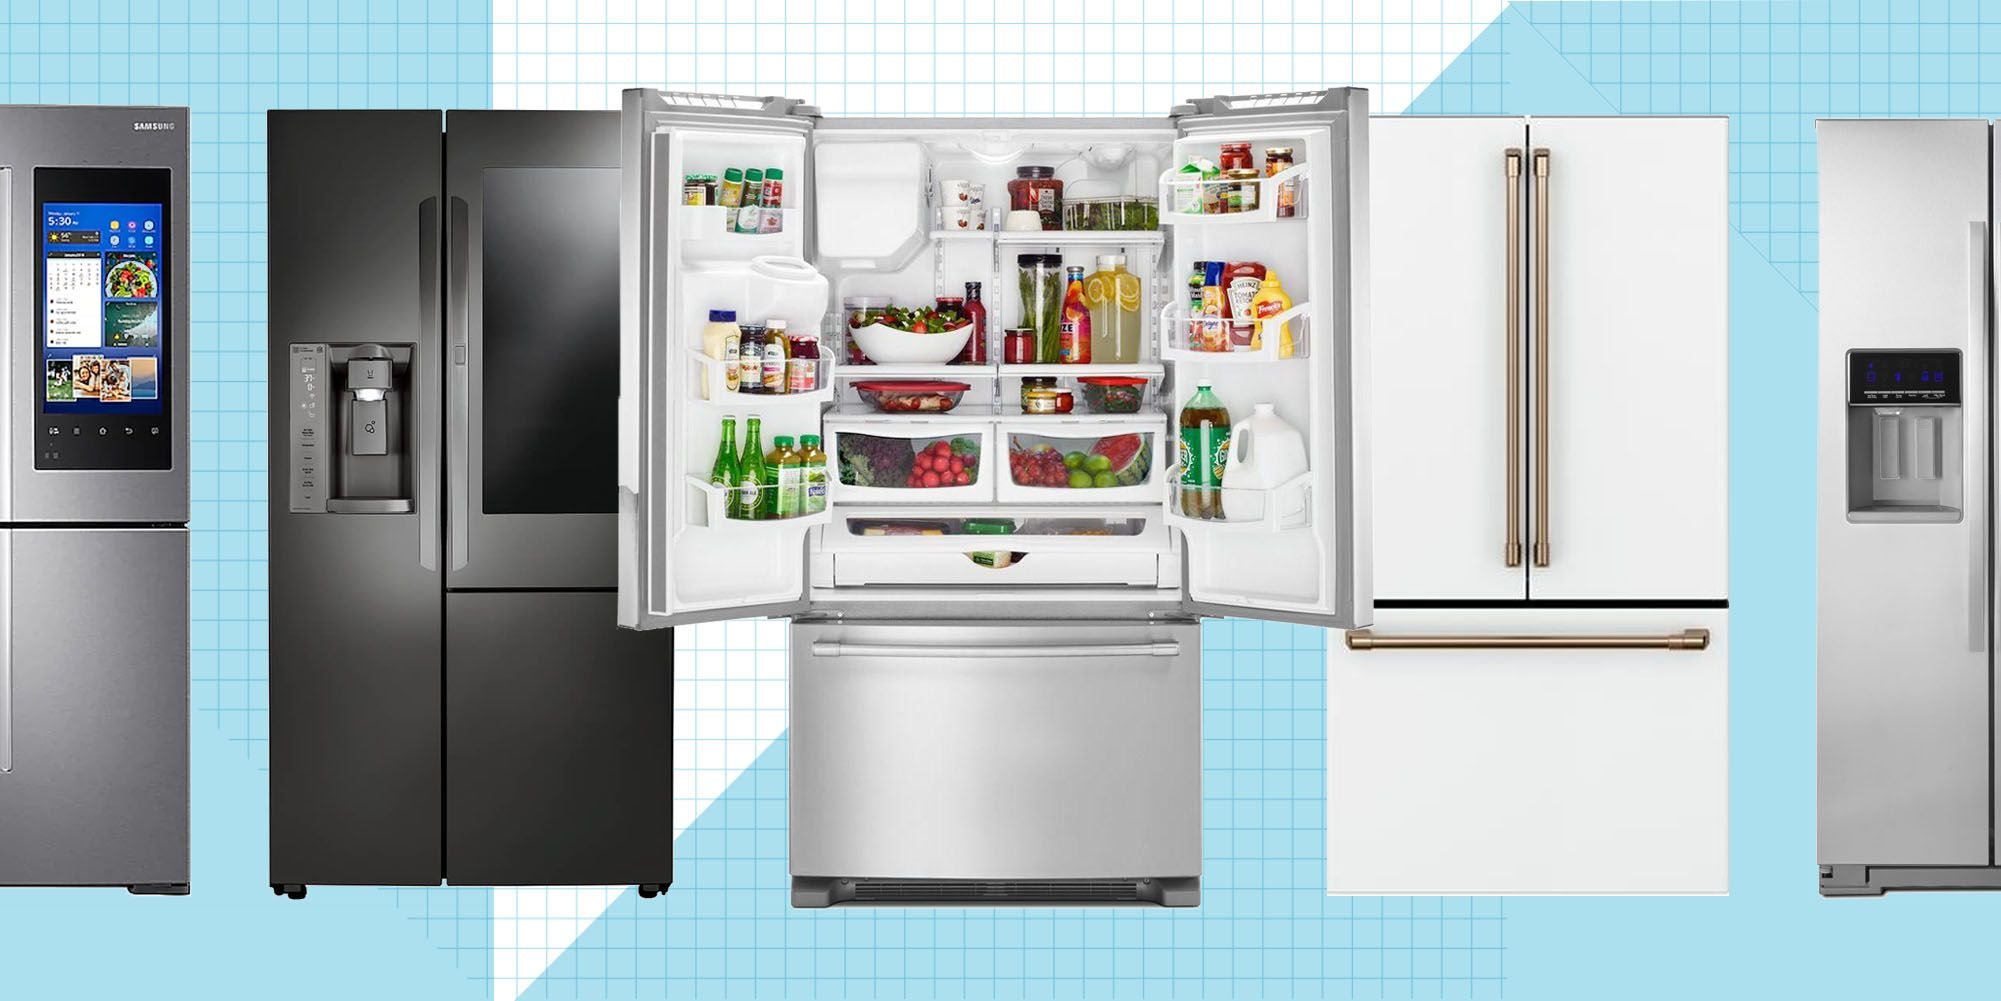 10 Best Refrigerators To Buy In 2019, According To Kitchen Appliance Experts